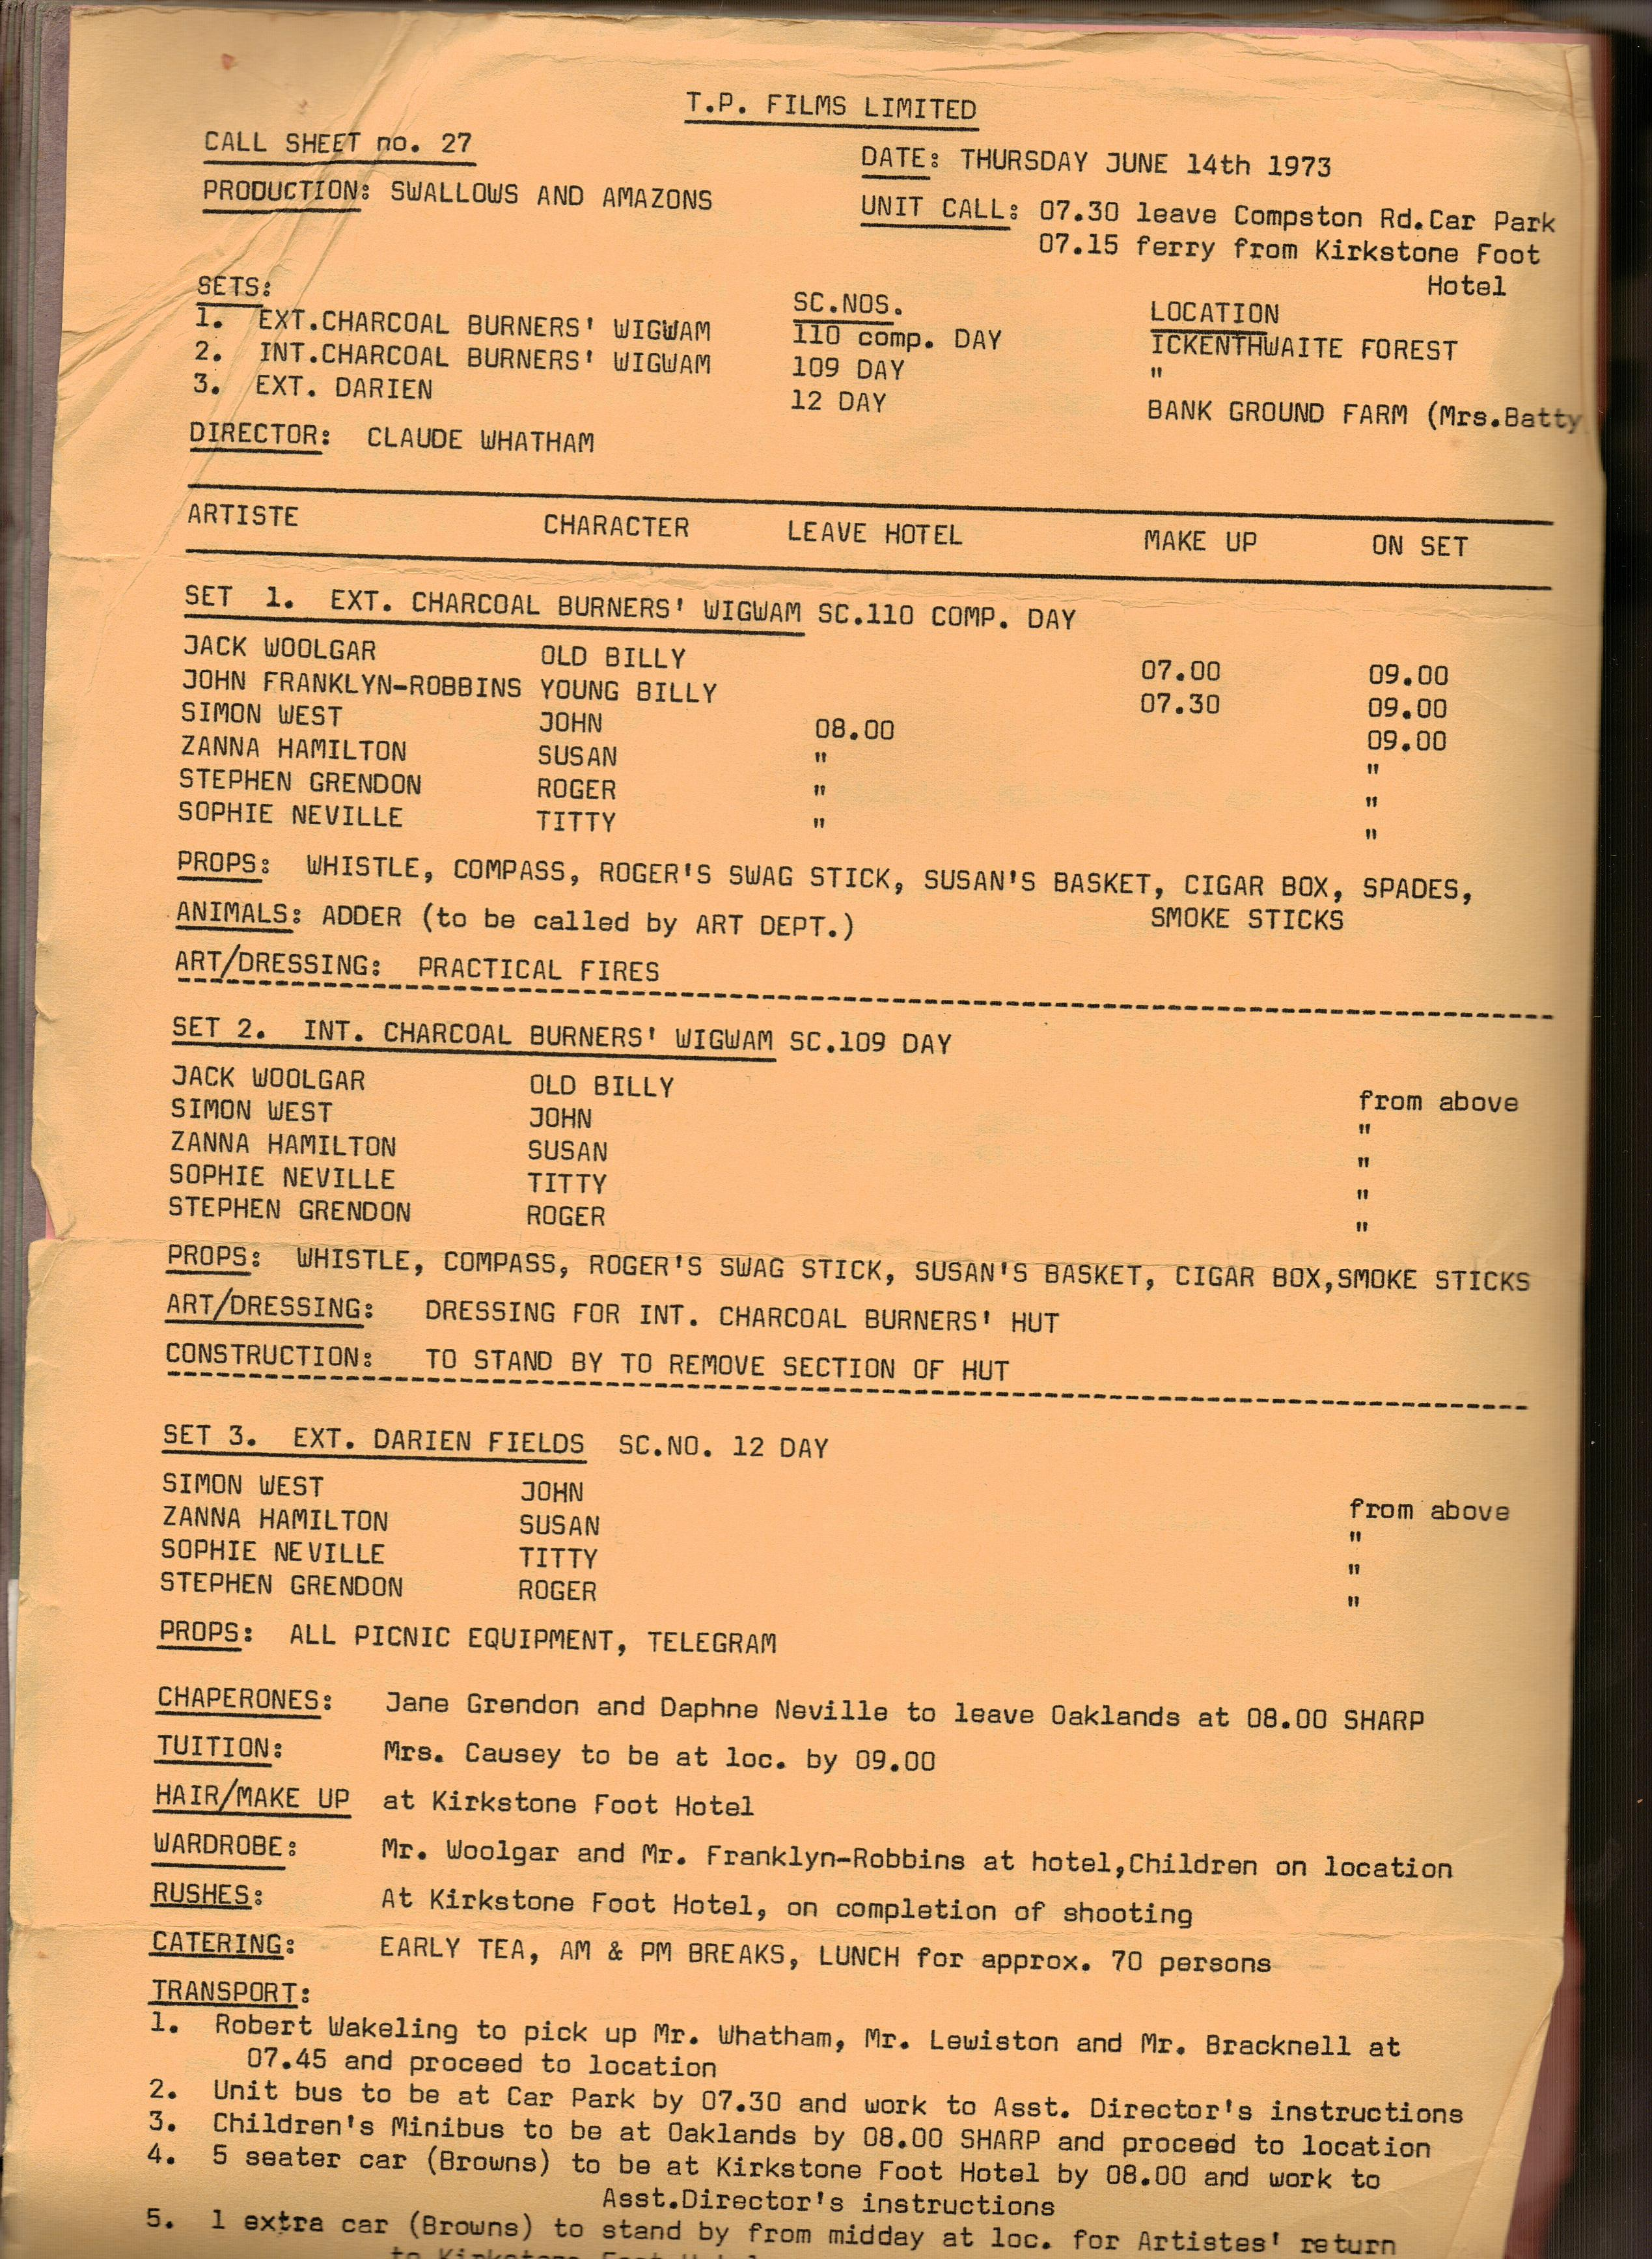 Charcoal Burners Movie Call Sheet ~ Swallows and Amazons